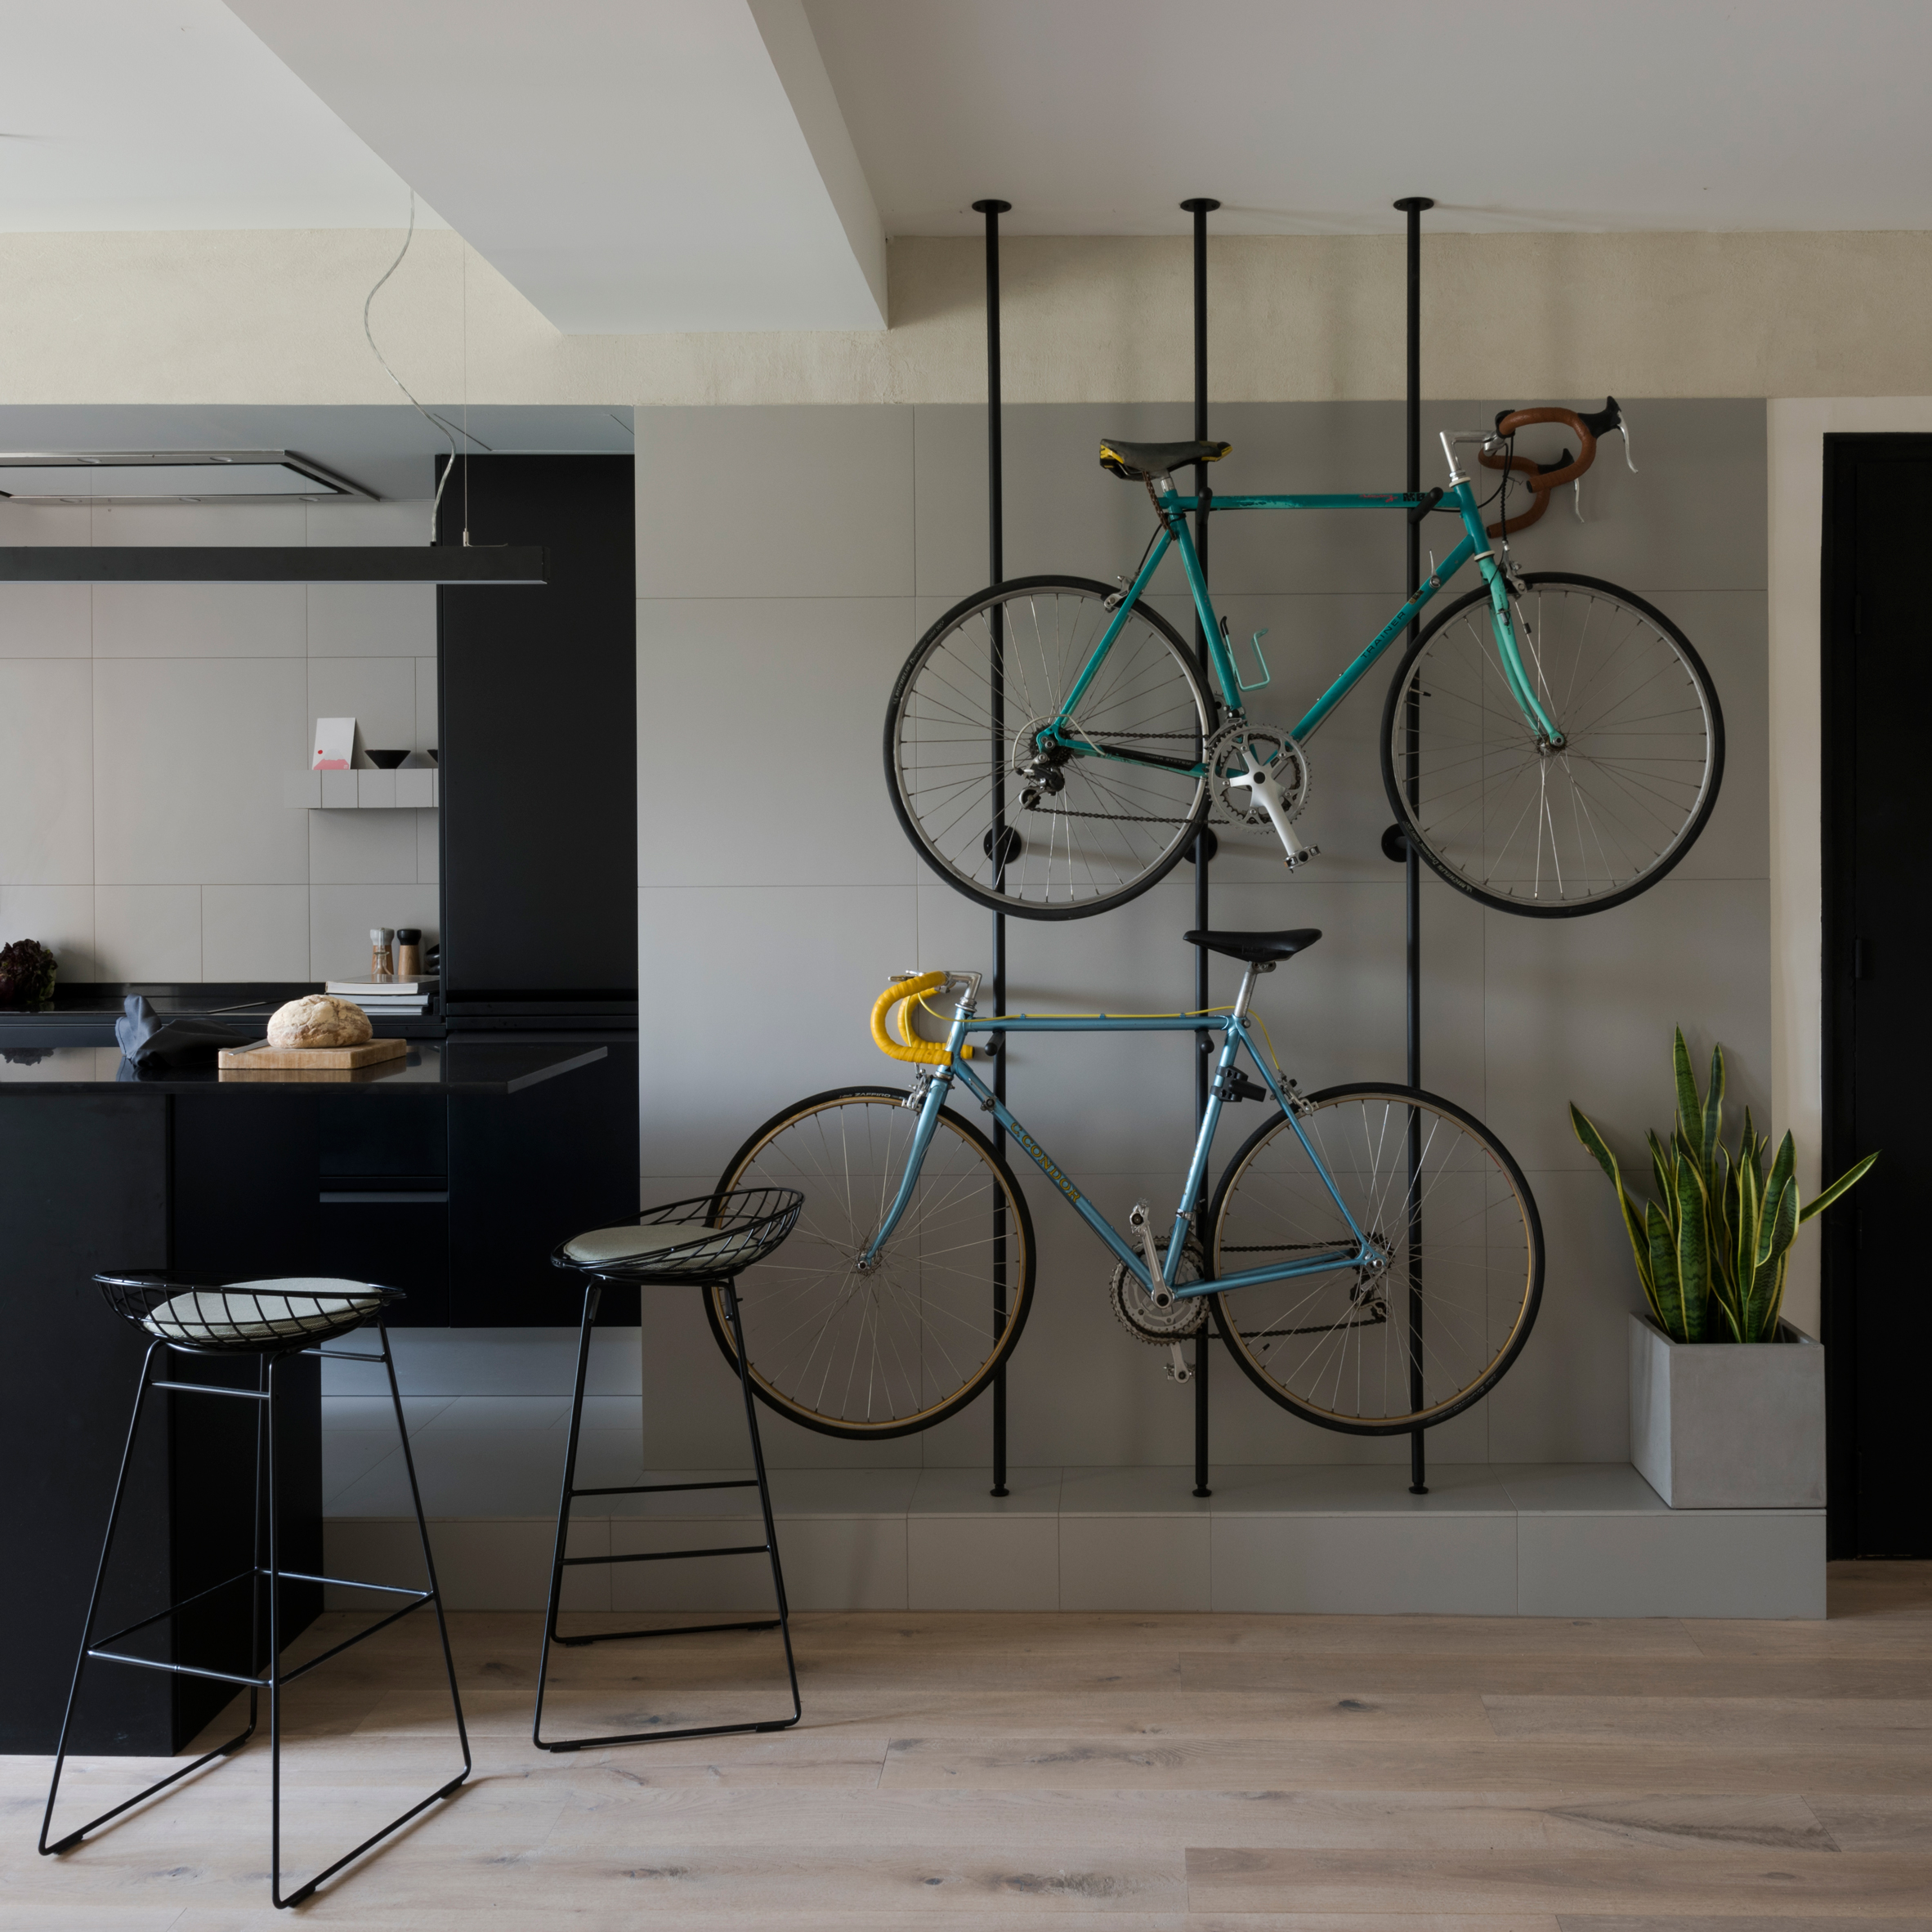 Bespoke Storage Creates Room For Bicycles In Renovated Barcelona Flat